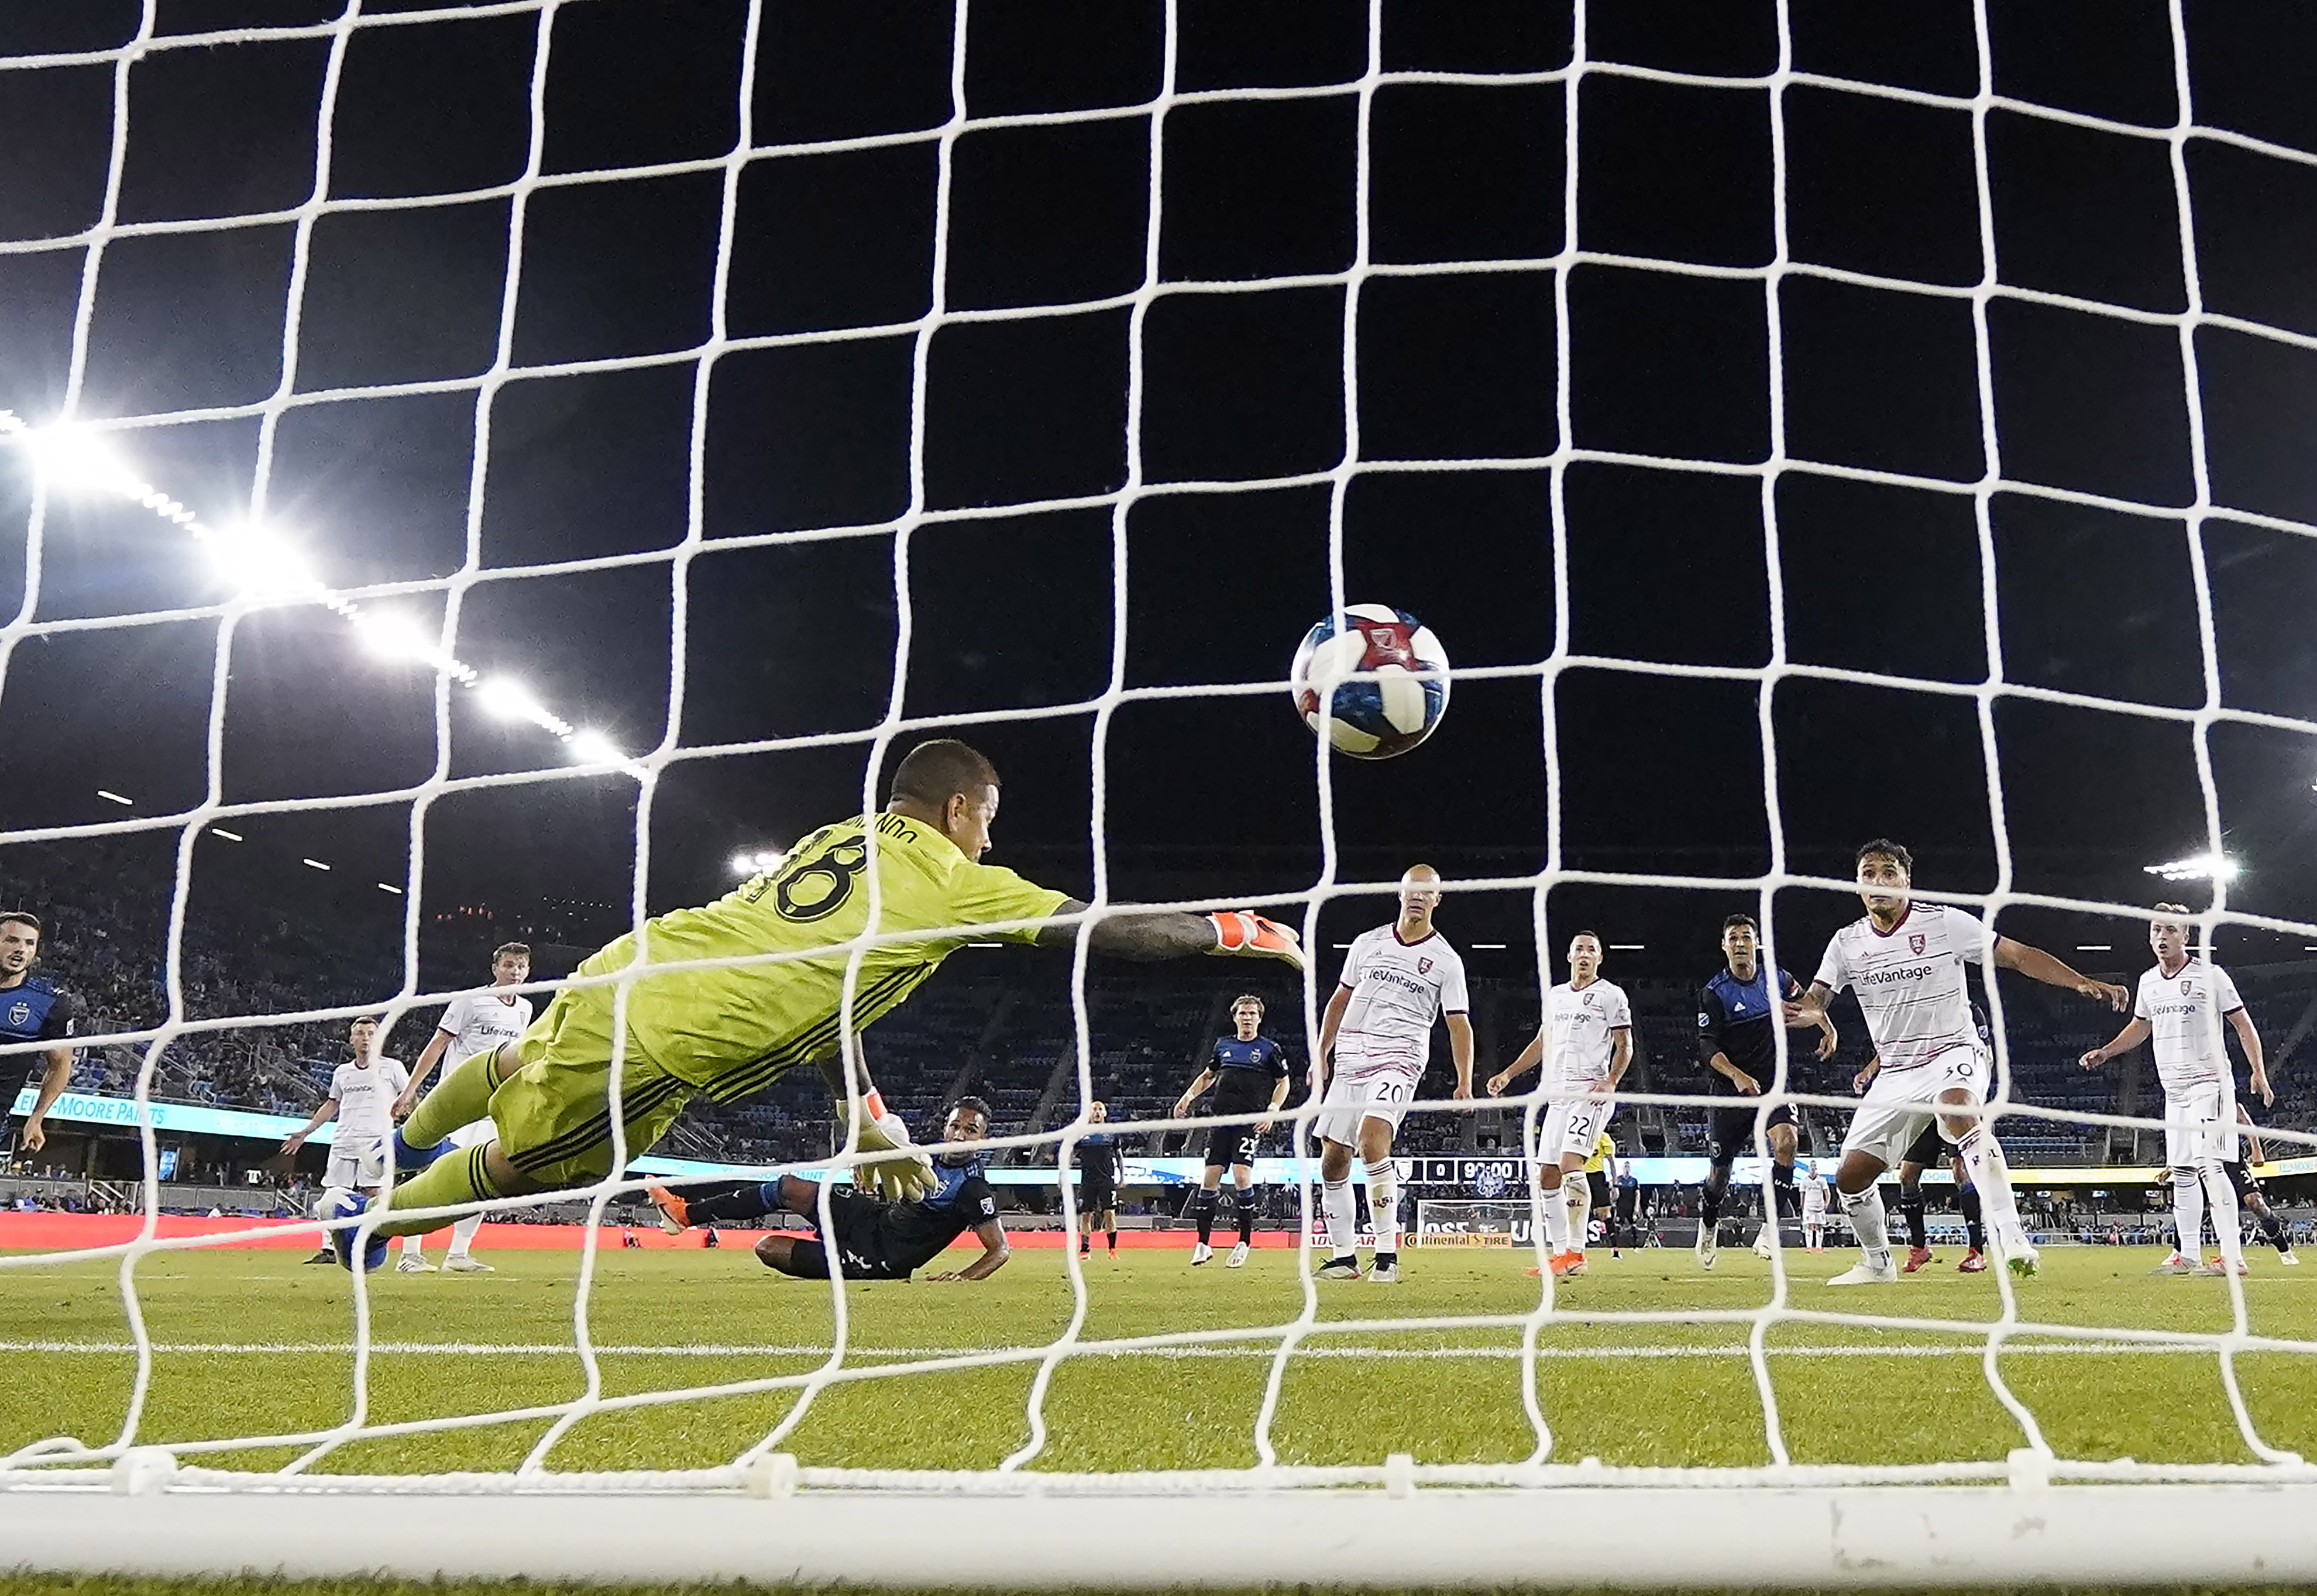 Hoesen's late goal lifts Quakes over Real Salt Lake 1-0